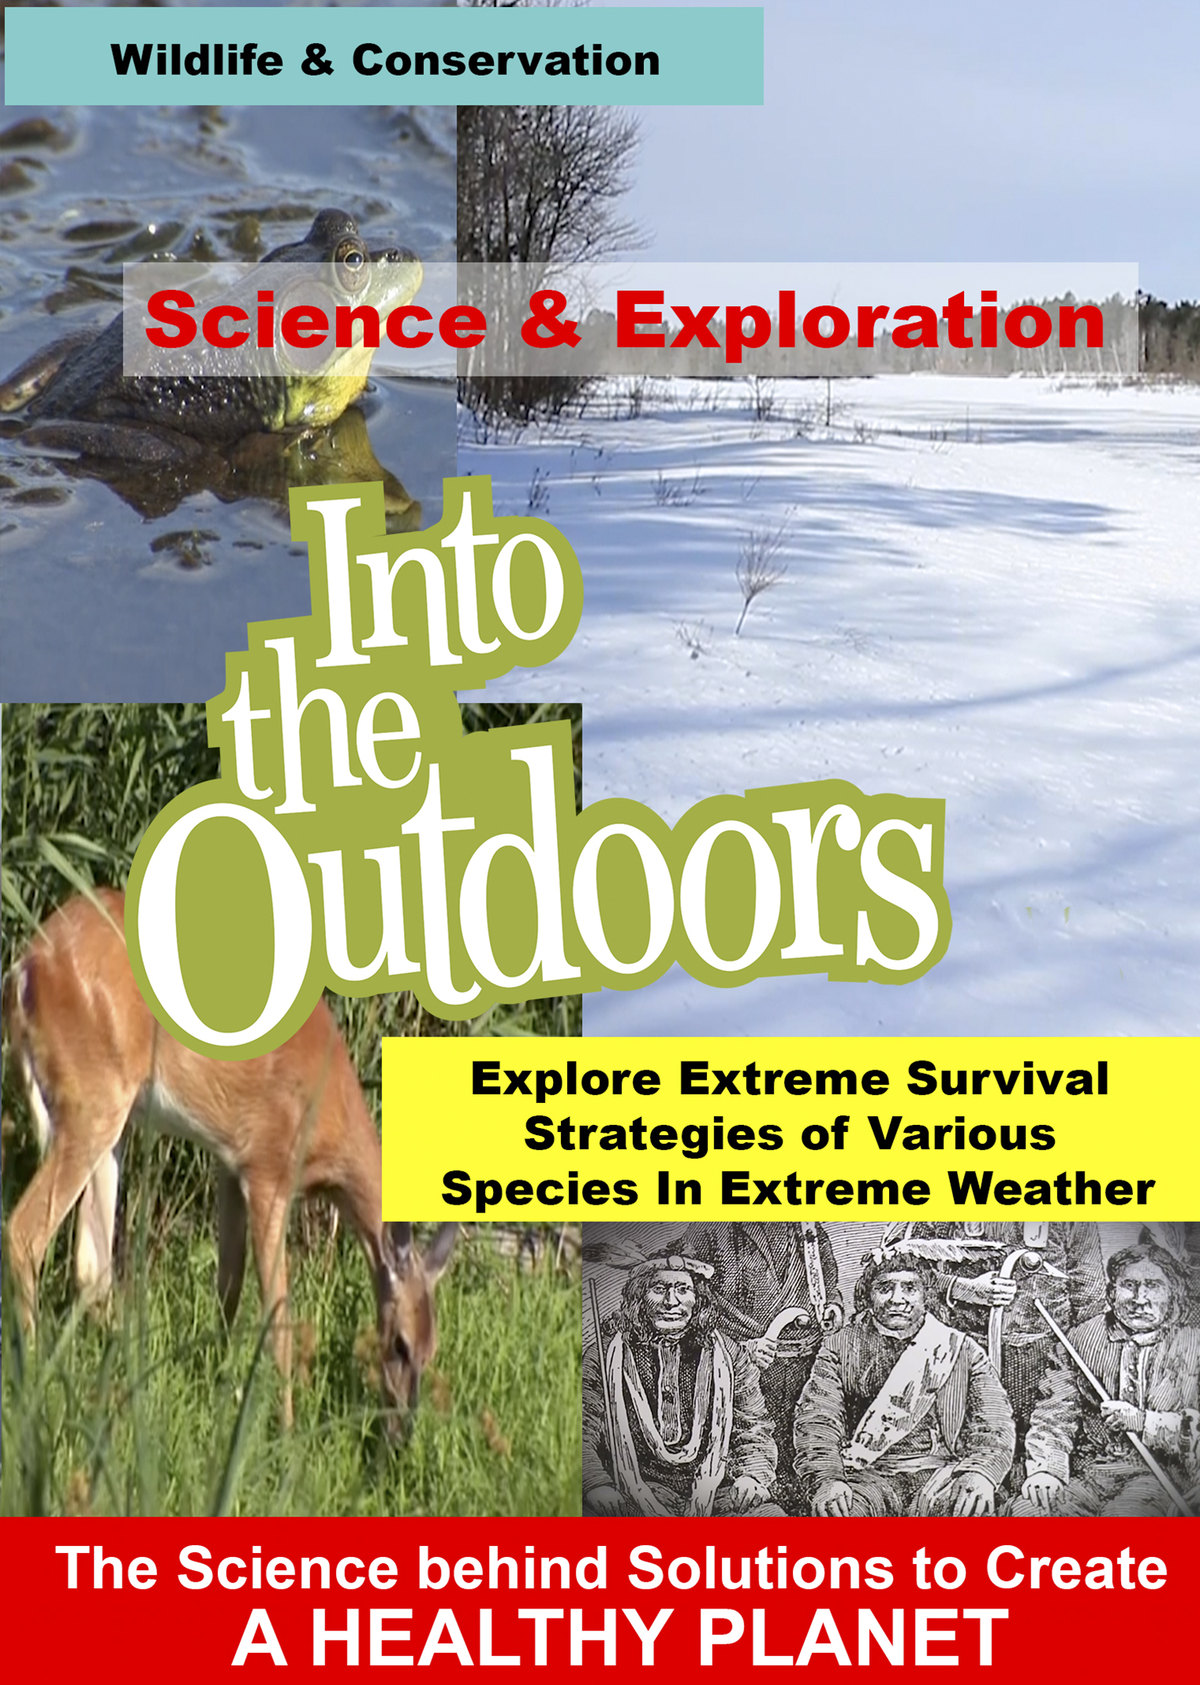 K4970 - Explore Extreme Survival Strategies of Various Species In Extreme Weather